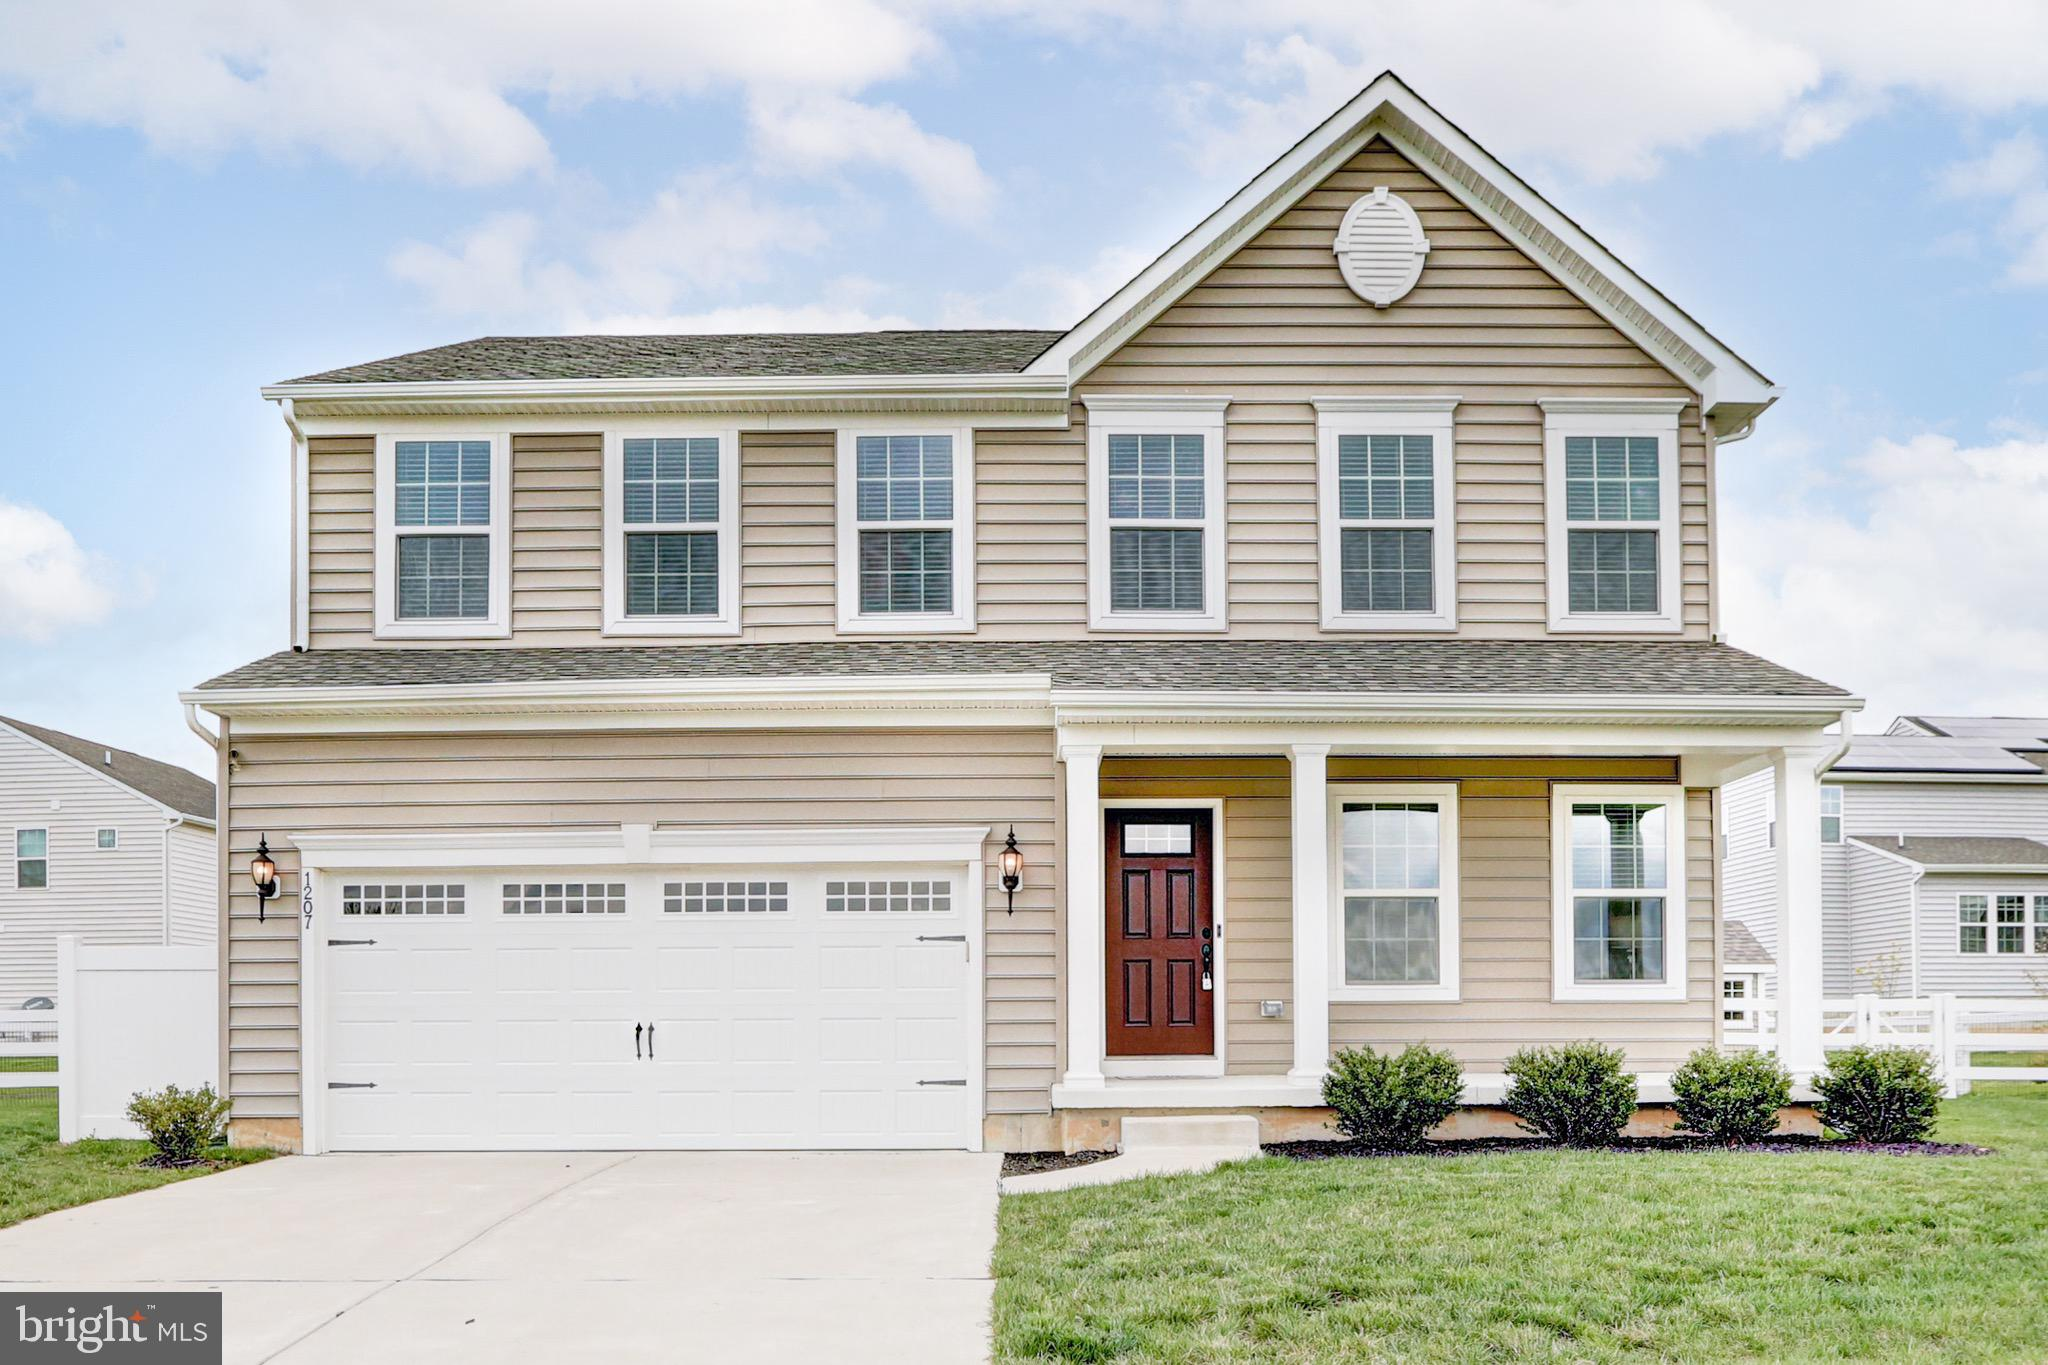 """Welcome to the completely SOLD OUT neighborhood of High Hook Farms! Located on the north side of Middletown, this development is well known for its convenient location to Route 1 &13 and one of the BEST school feeder patterns in the state of Delaware!  This GORGEOUS 4 bedroom home is ready for you to move right in! Known as the """"Venice"""" floor plan by Ryan Homes, this home has over 3,000 finished square feet spread over 3 finished floors!   As you walk in the front entry, you will be welcomed by the living room area that can also serve as an office for any work or school needs. Walking down the hallway you'll appreciate the wide plank hardwood floors, coffee bean color, that expands throughout the first floor!   Entering the kitchen, the beautiful 42"""" espresso cabinets will """"wow"""" you with their luxury look, and include a granite countertop, big island, and all stainless steel appliances! Through the doors, just off  the kitchen is a wonderful outdoor space perfect for entertaining. A HUGE 500 sq ft brick patio including a seat ledge opens up to the grassy area which is entirely fenced in and there is a shed for outdoor storage.  (Don't worry those trees will quickly grow up and give you more privacy!). Also outside, we'd be remiss if we didn't point out the most obvious reason for buying this home... THE VIEW!  Just across the street is an endless protected wetland, so peaceful you may want to set up a chair out front and never come inside!  But for now, lets go back inside and talk about the 2nd floor.... Upstairs you will find three bedrooms (oversized!), a hall bathroom, and the best part, a full walk in laundry room!!  The owner suite is at the end of the hall and features a huge walk-in closet and large bathroom also with granite counters, tile surrounds, and a soaking tub. Also, custom window blinds and treatments are also included throughout this home! Last but certainly not least, this home has a FINISHED BASEMENT!  Enjoy endless possibilities with this addit"""